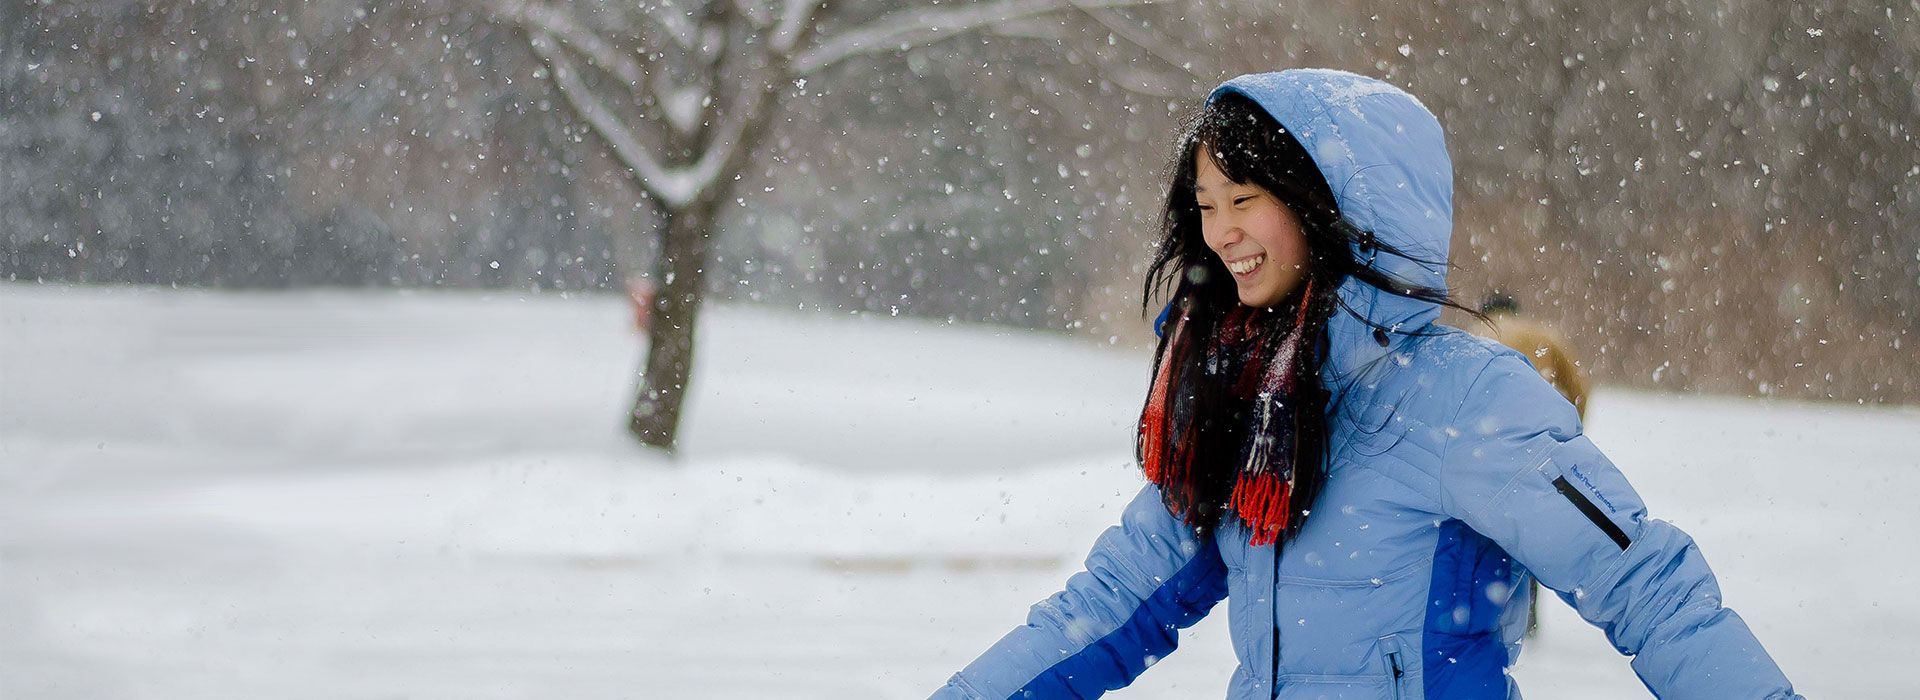 picture of a centennial college student skating at morningside park smiling during a winter snowfall